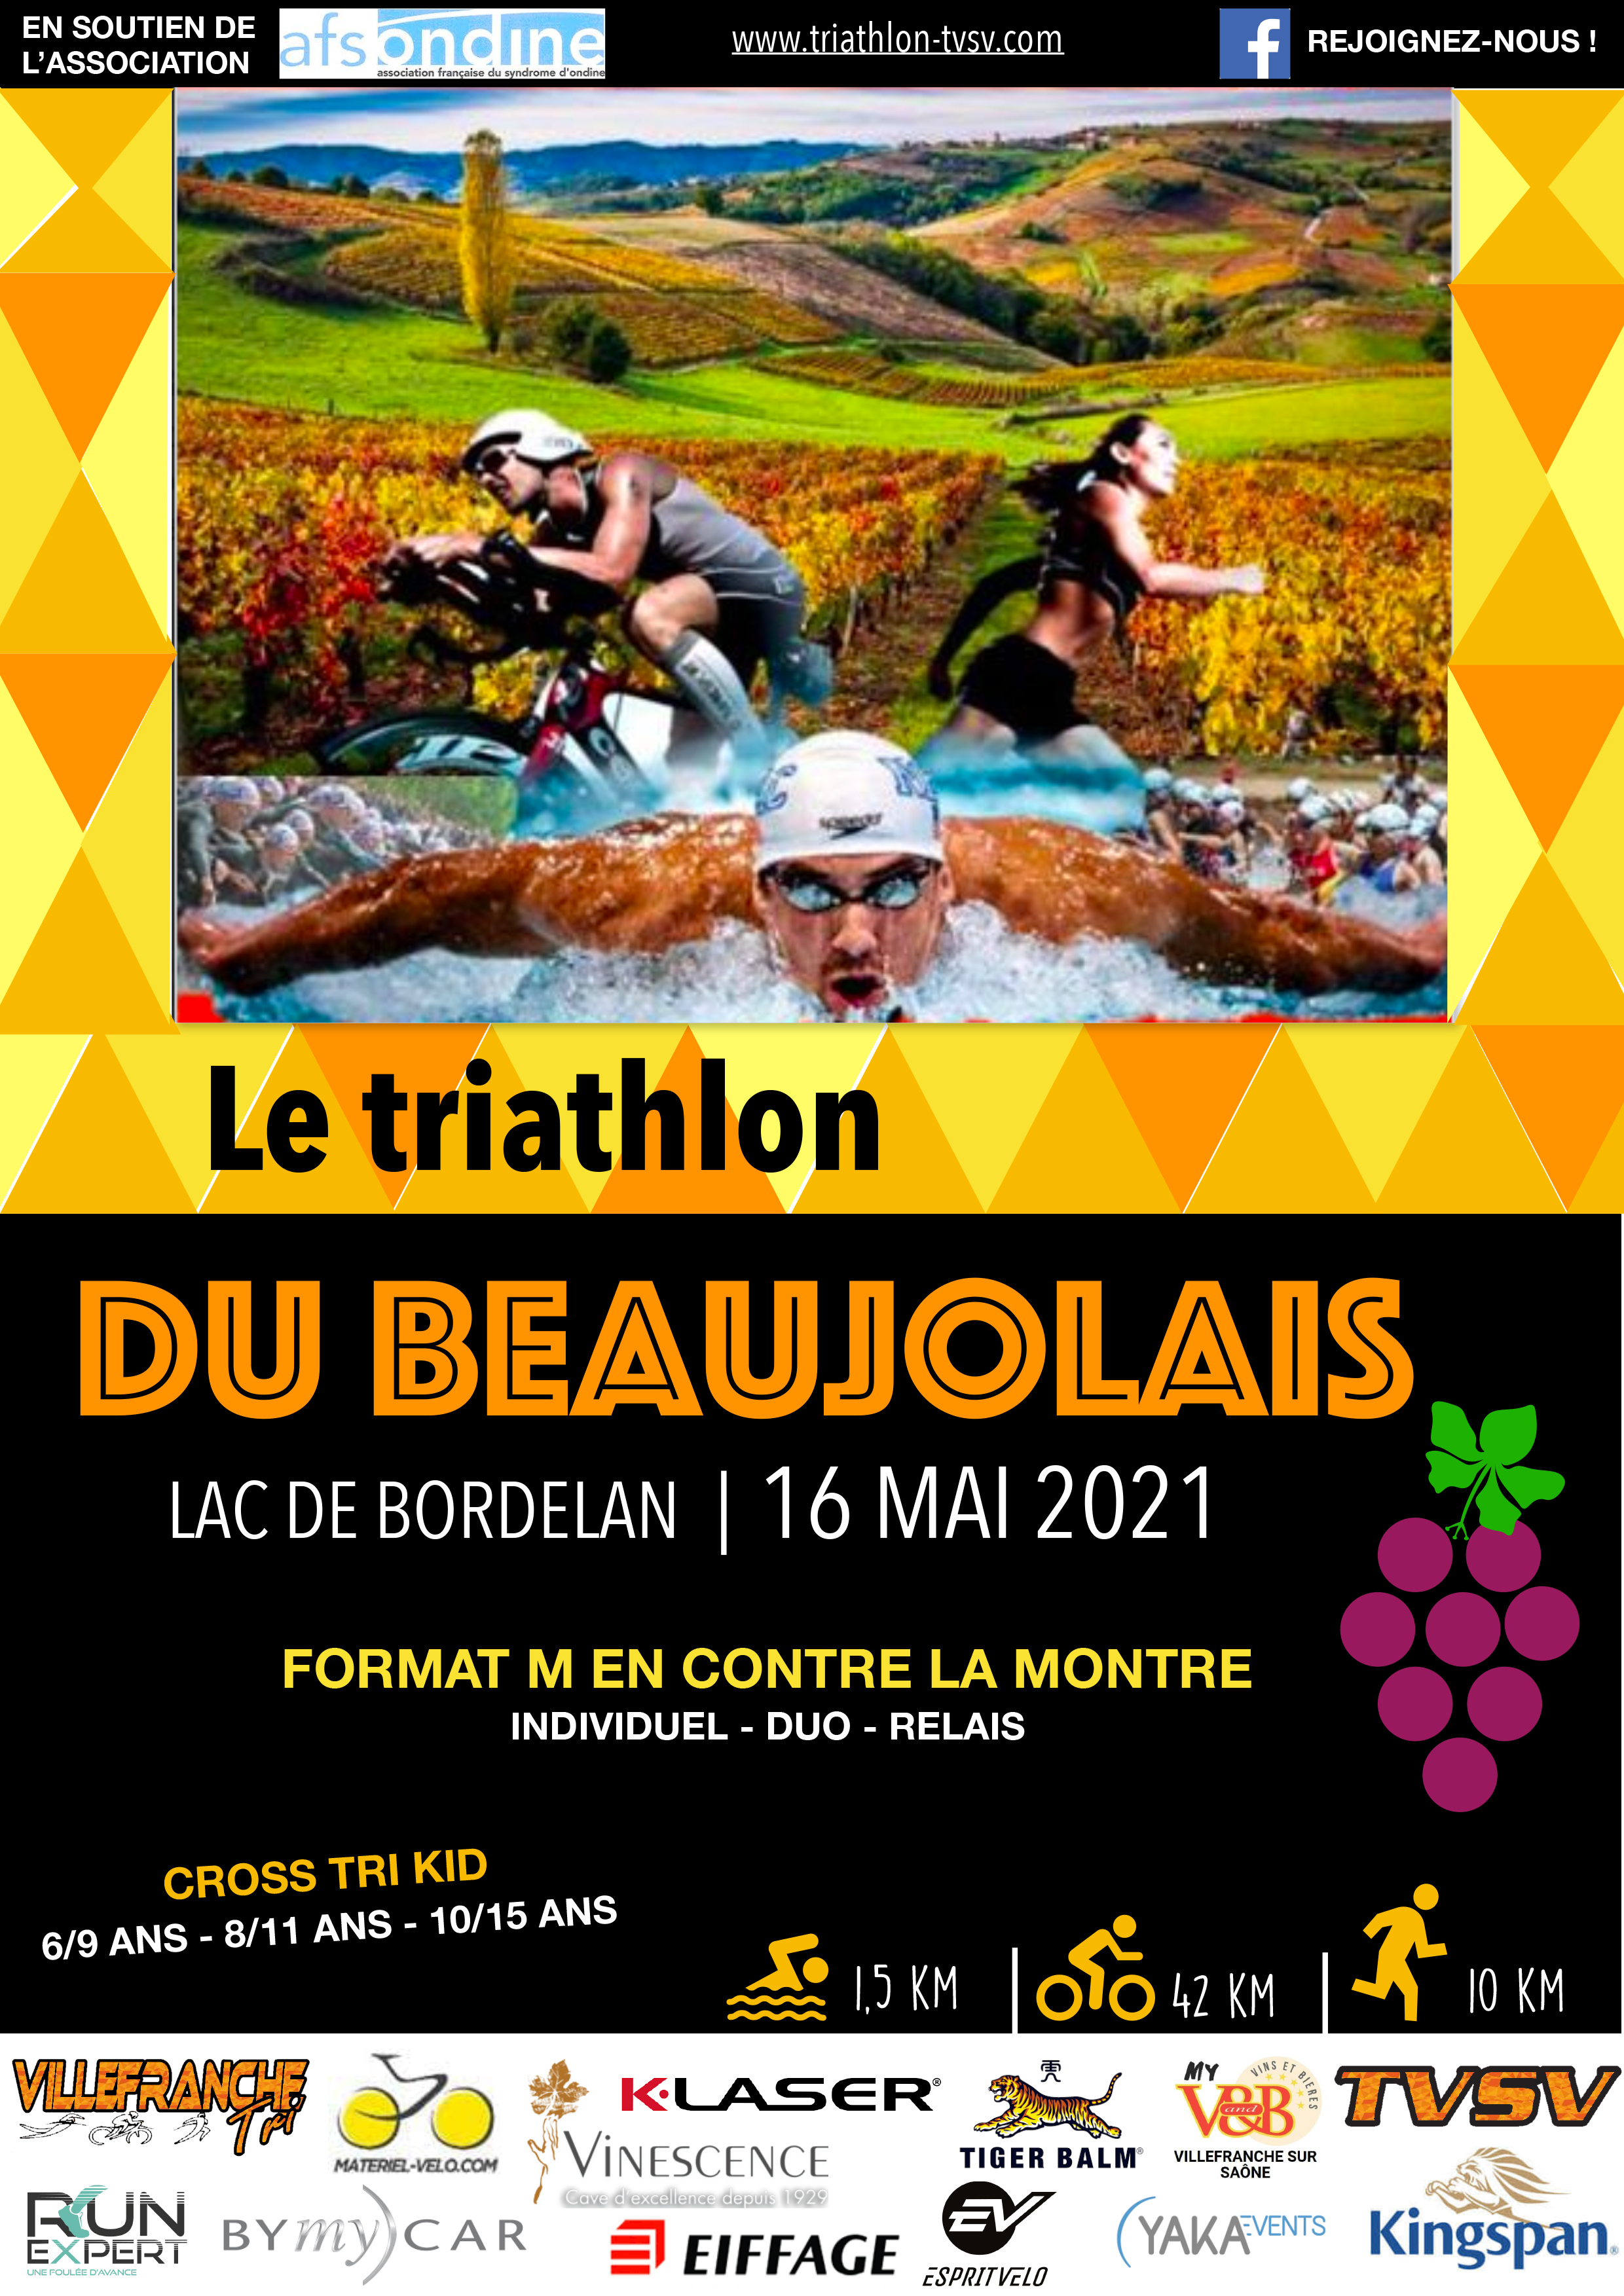 TRIATHLON DU BEAUJOLAIS